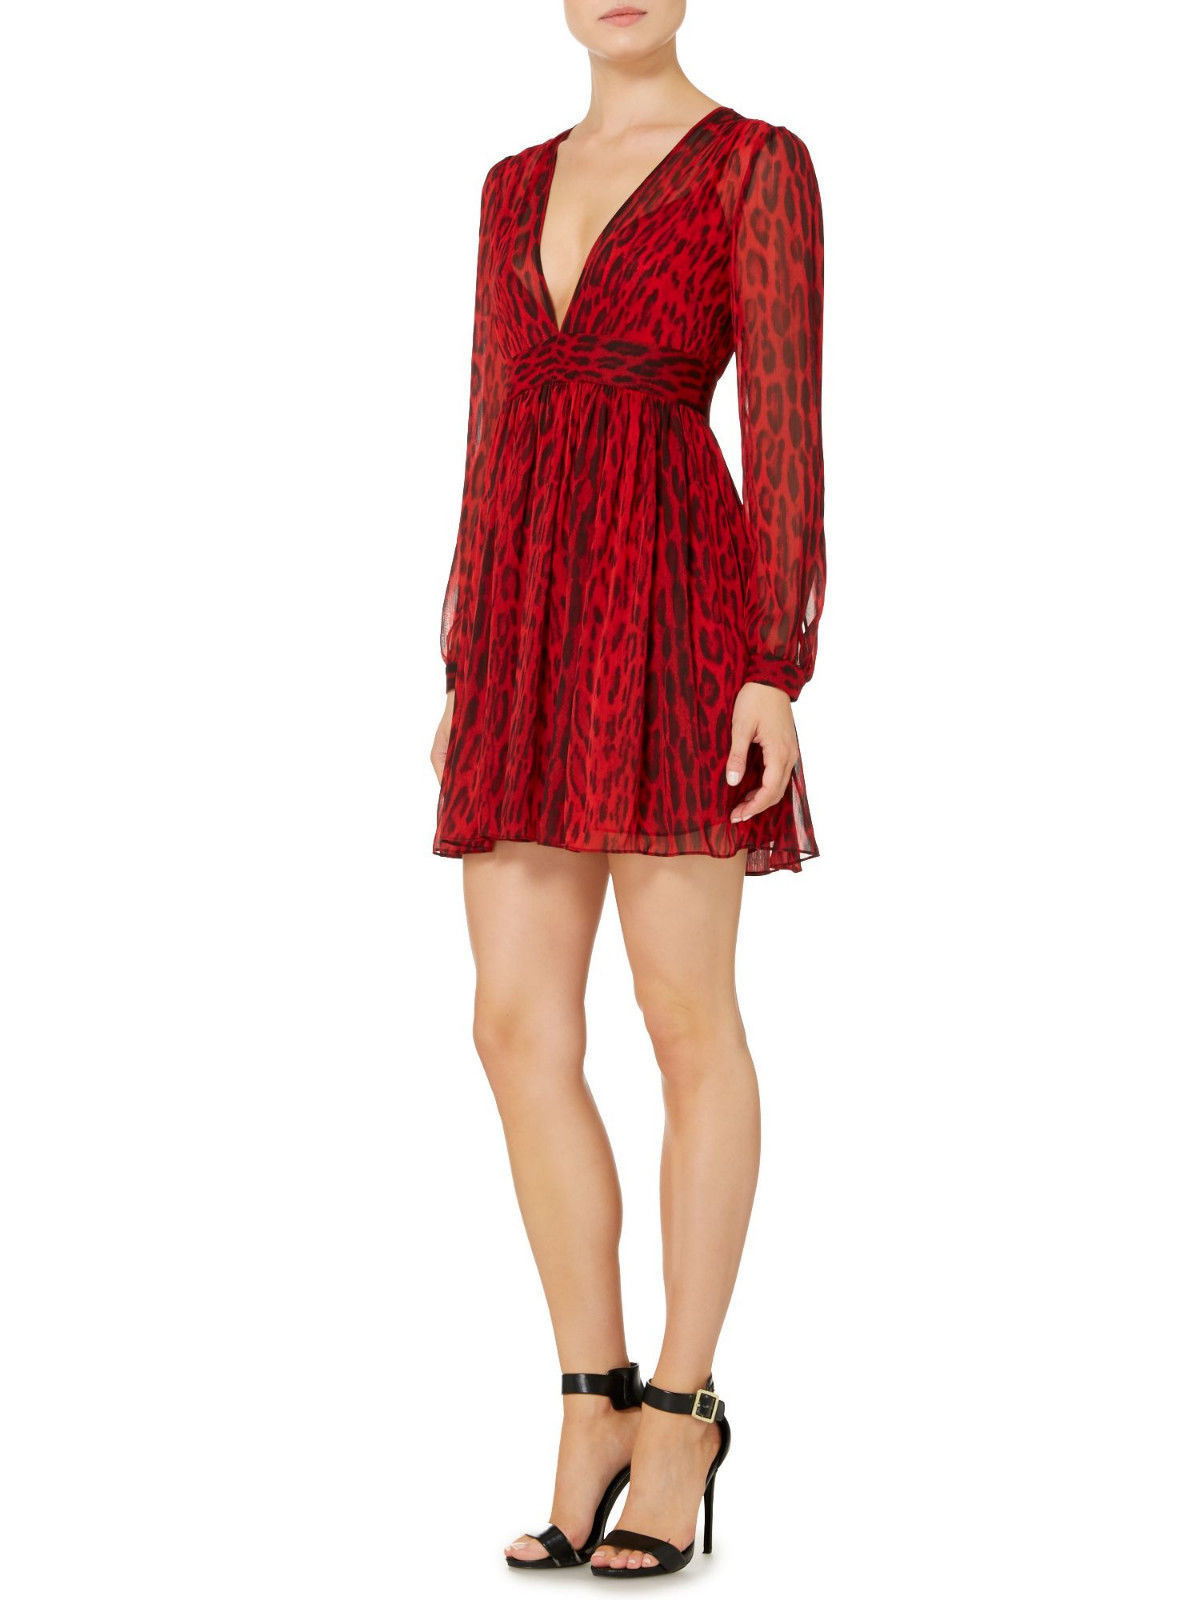 Primary image for MICHAEL Michael Kors New Womens Red/Black Printed Ruched V-neck Dress   10